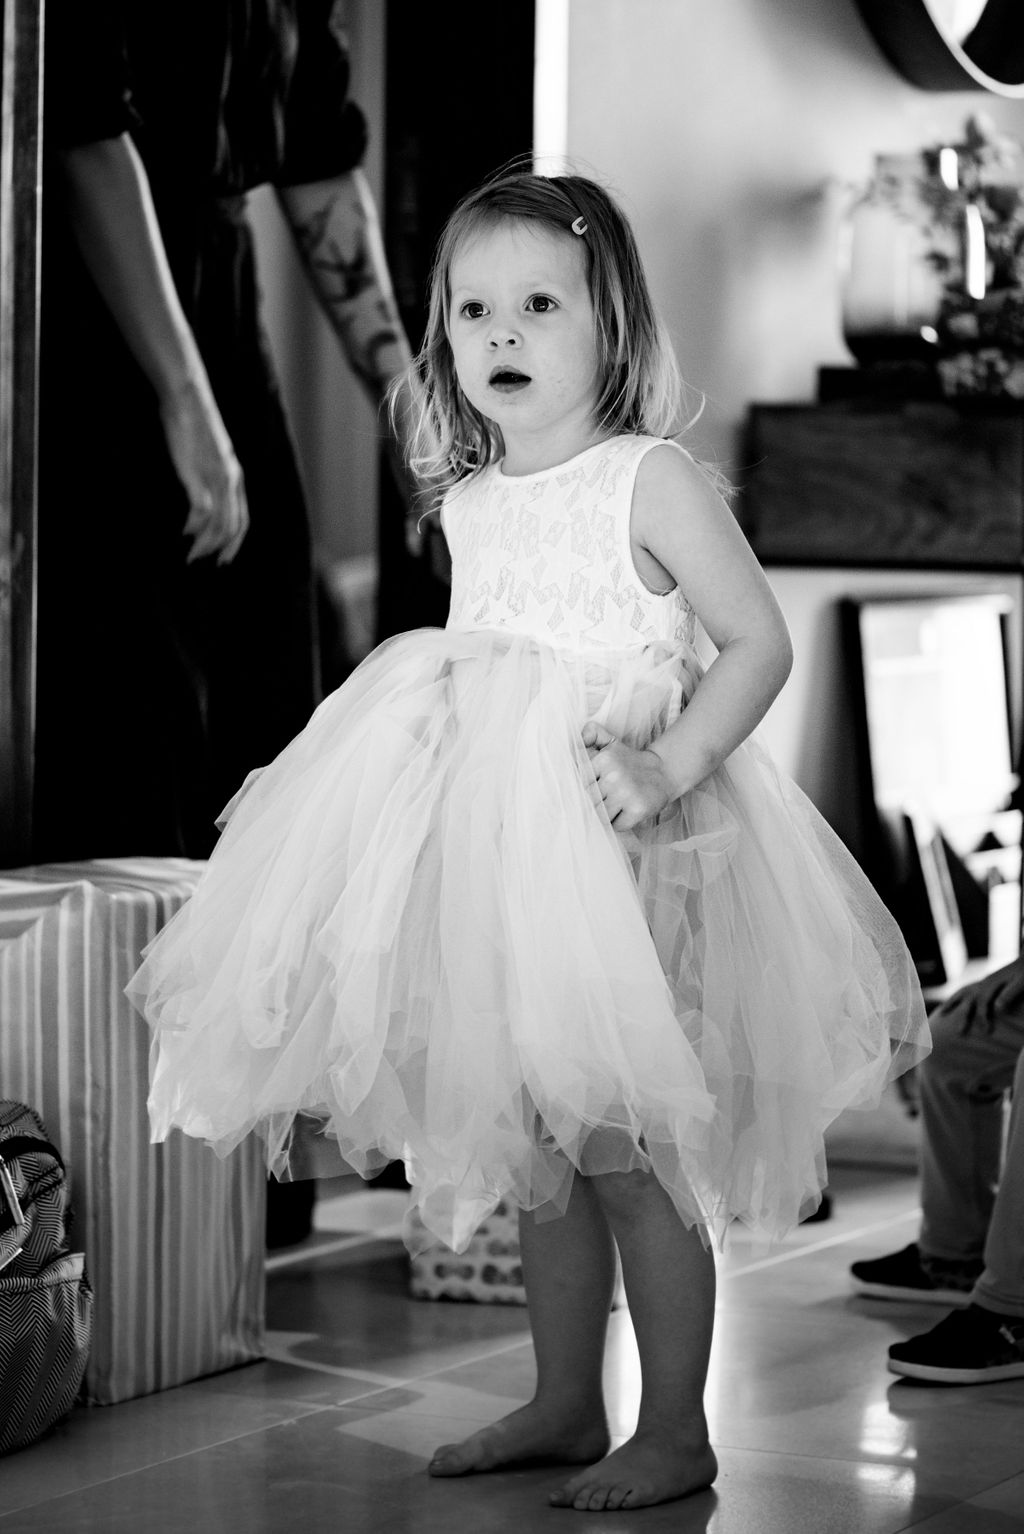 Girls birthday party - styling by My Lovely Wedding - fairy party at home. Photography by Bernie and Bindi